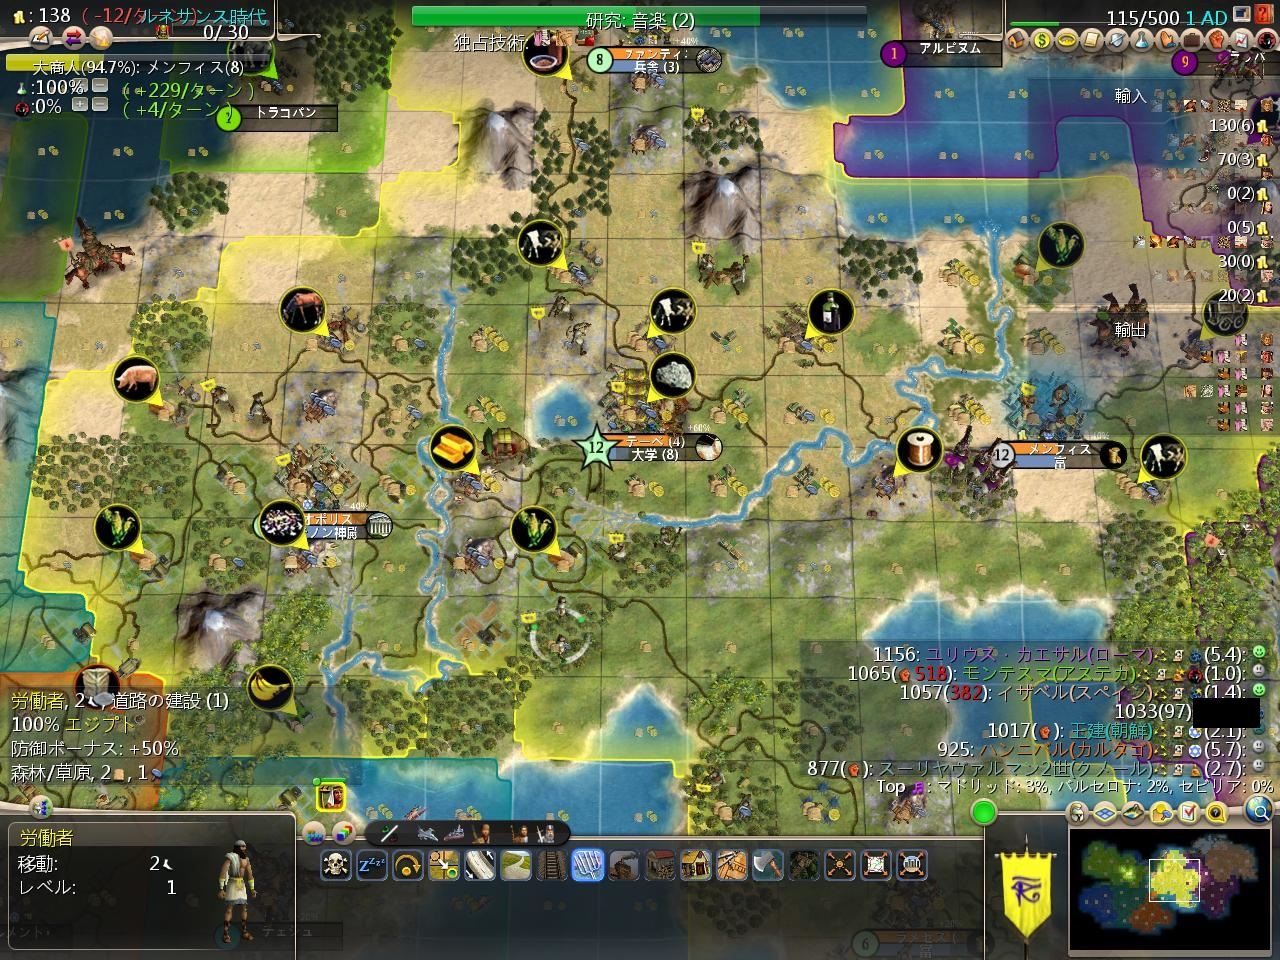 Civ4ScreenShot2135.JPG